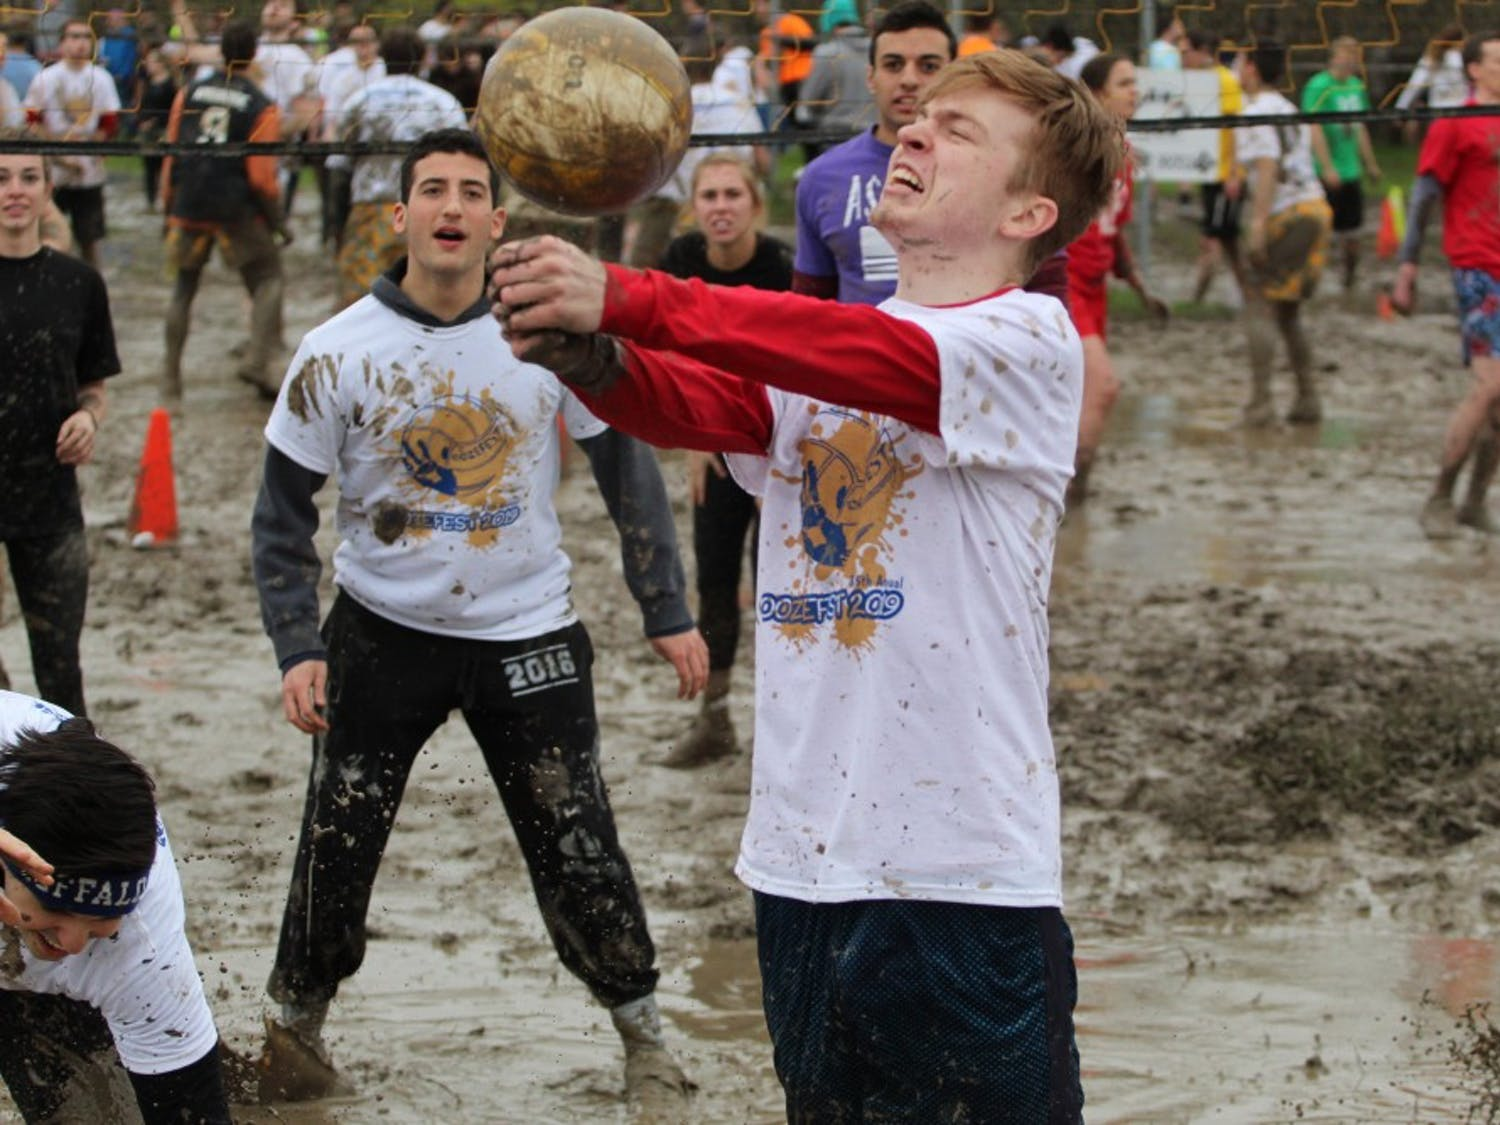 """UB student receives """"back-splash"""" from a muddy volleyball. Many students left Oozefest with muddy faces from similar experiences."""